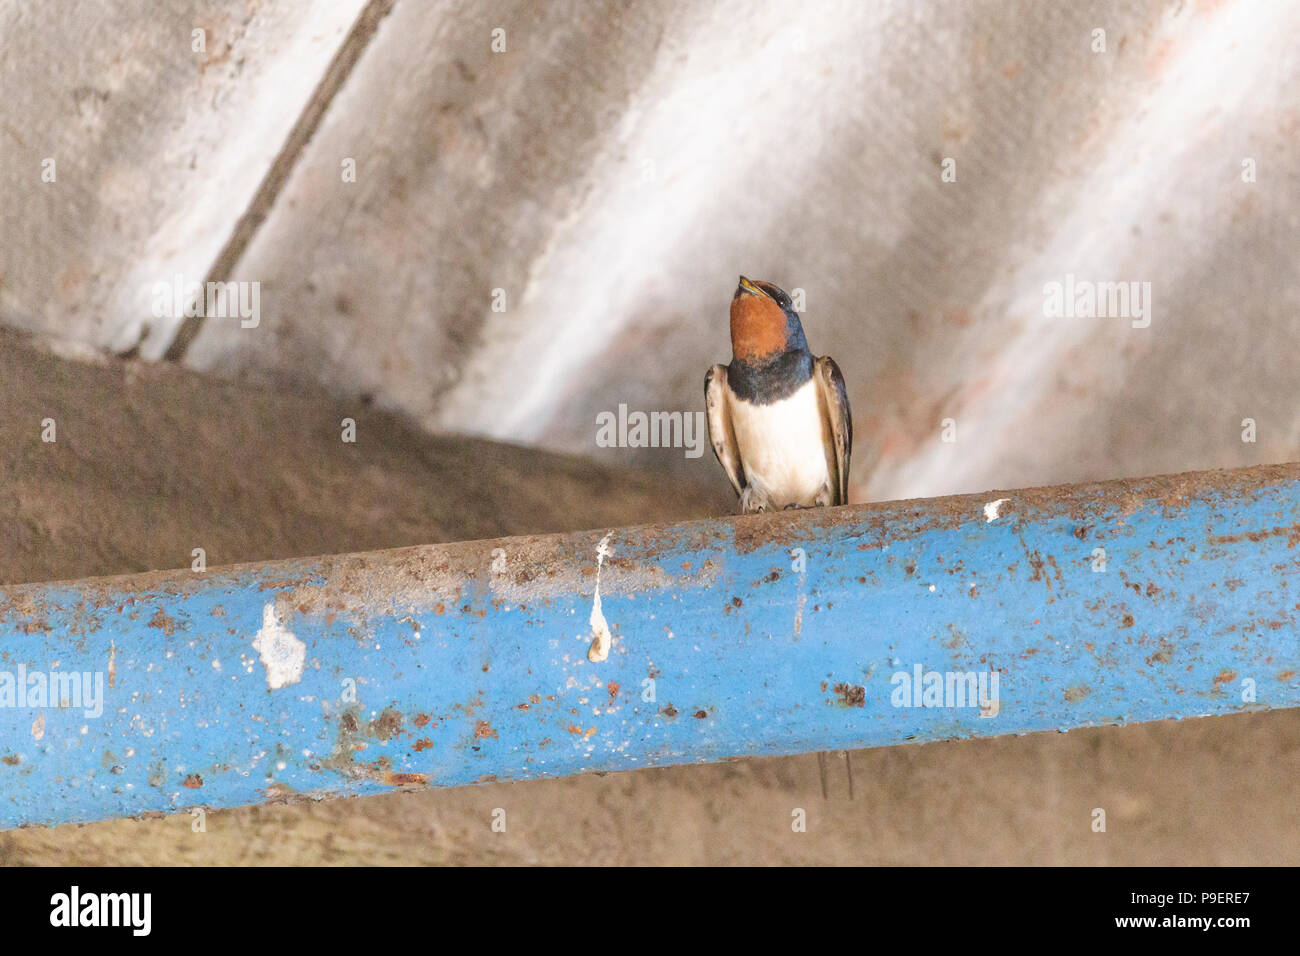 A swallow (UK) on a beam in an outbuilding. Stock Photo